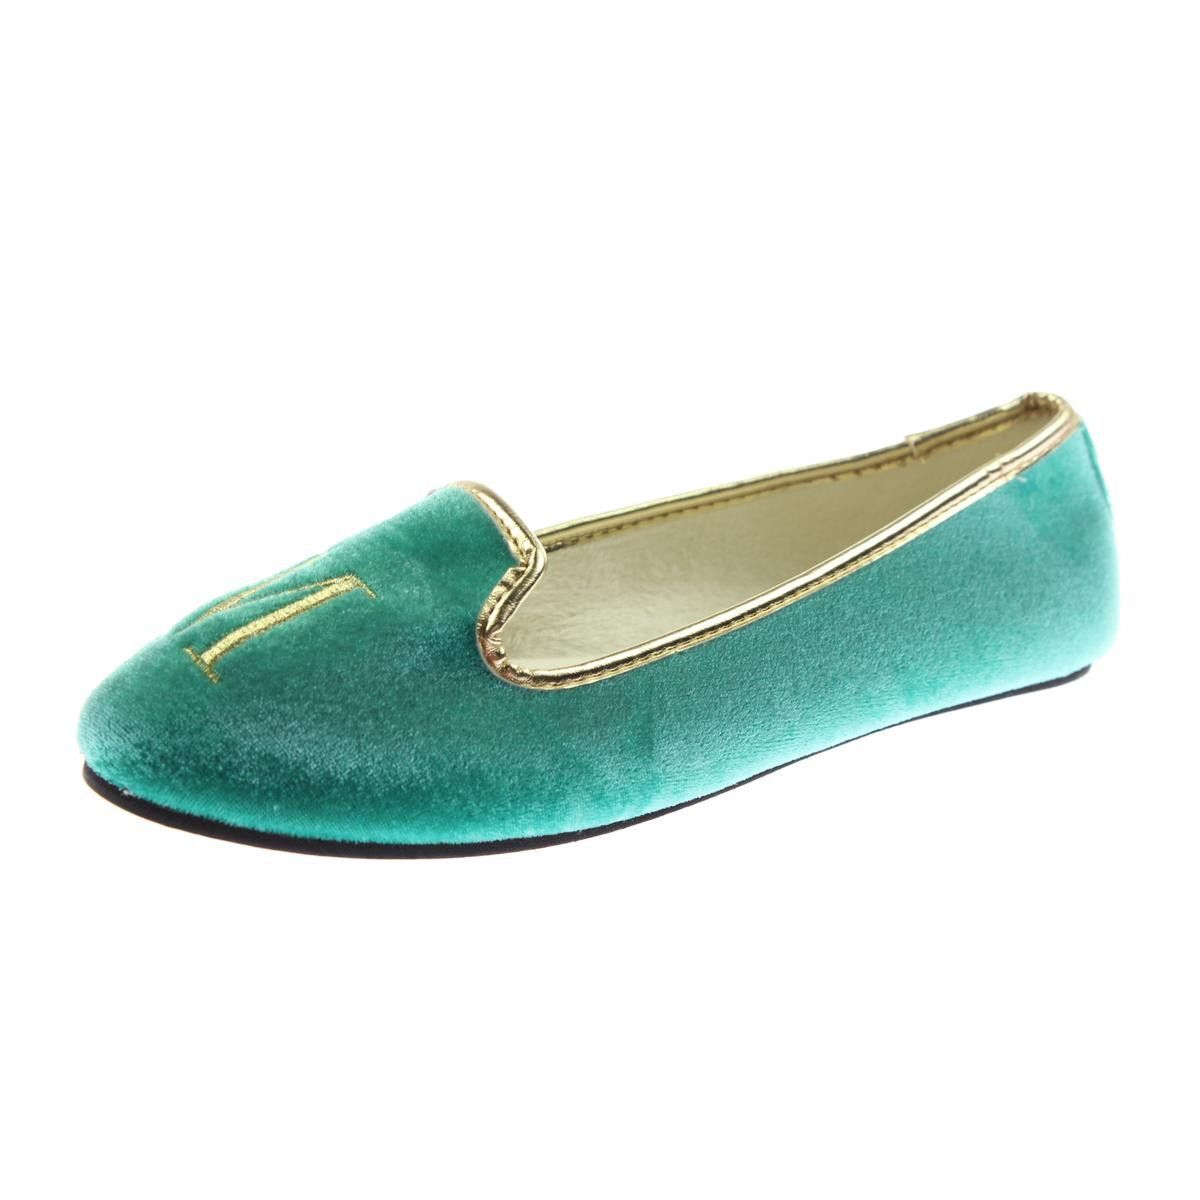 Isaac Mizrahi Womens Baker Round Toe Embroidered Smoking Loafers